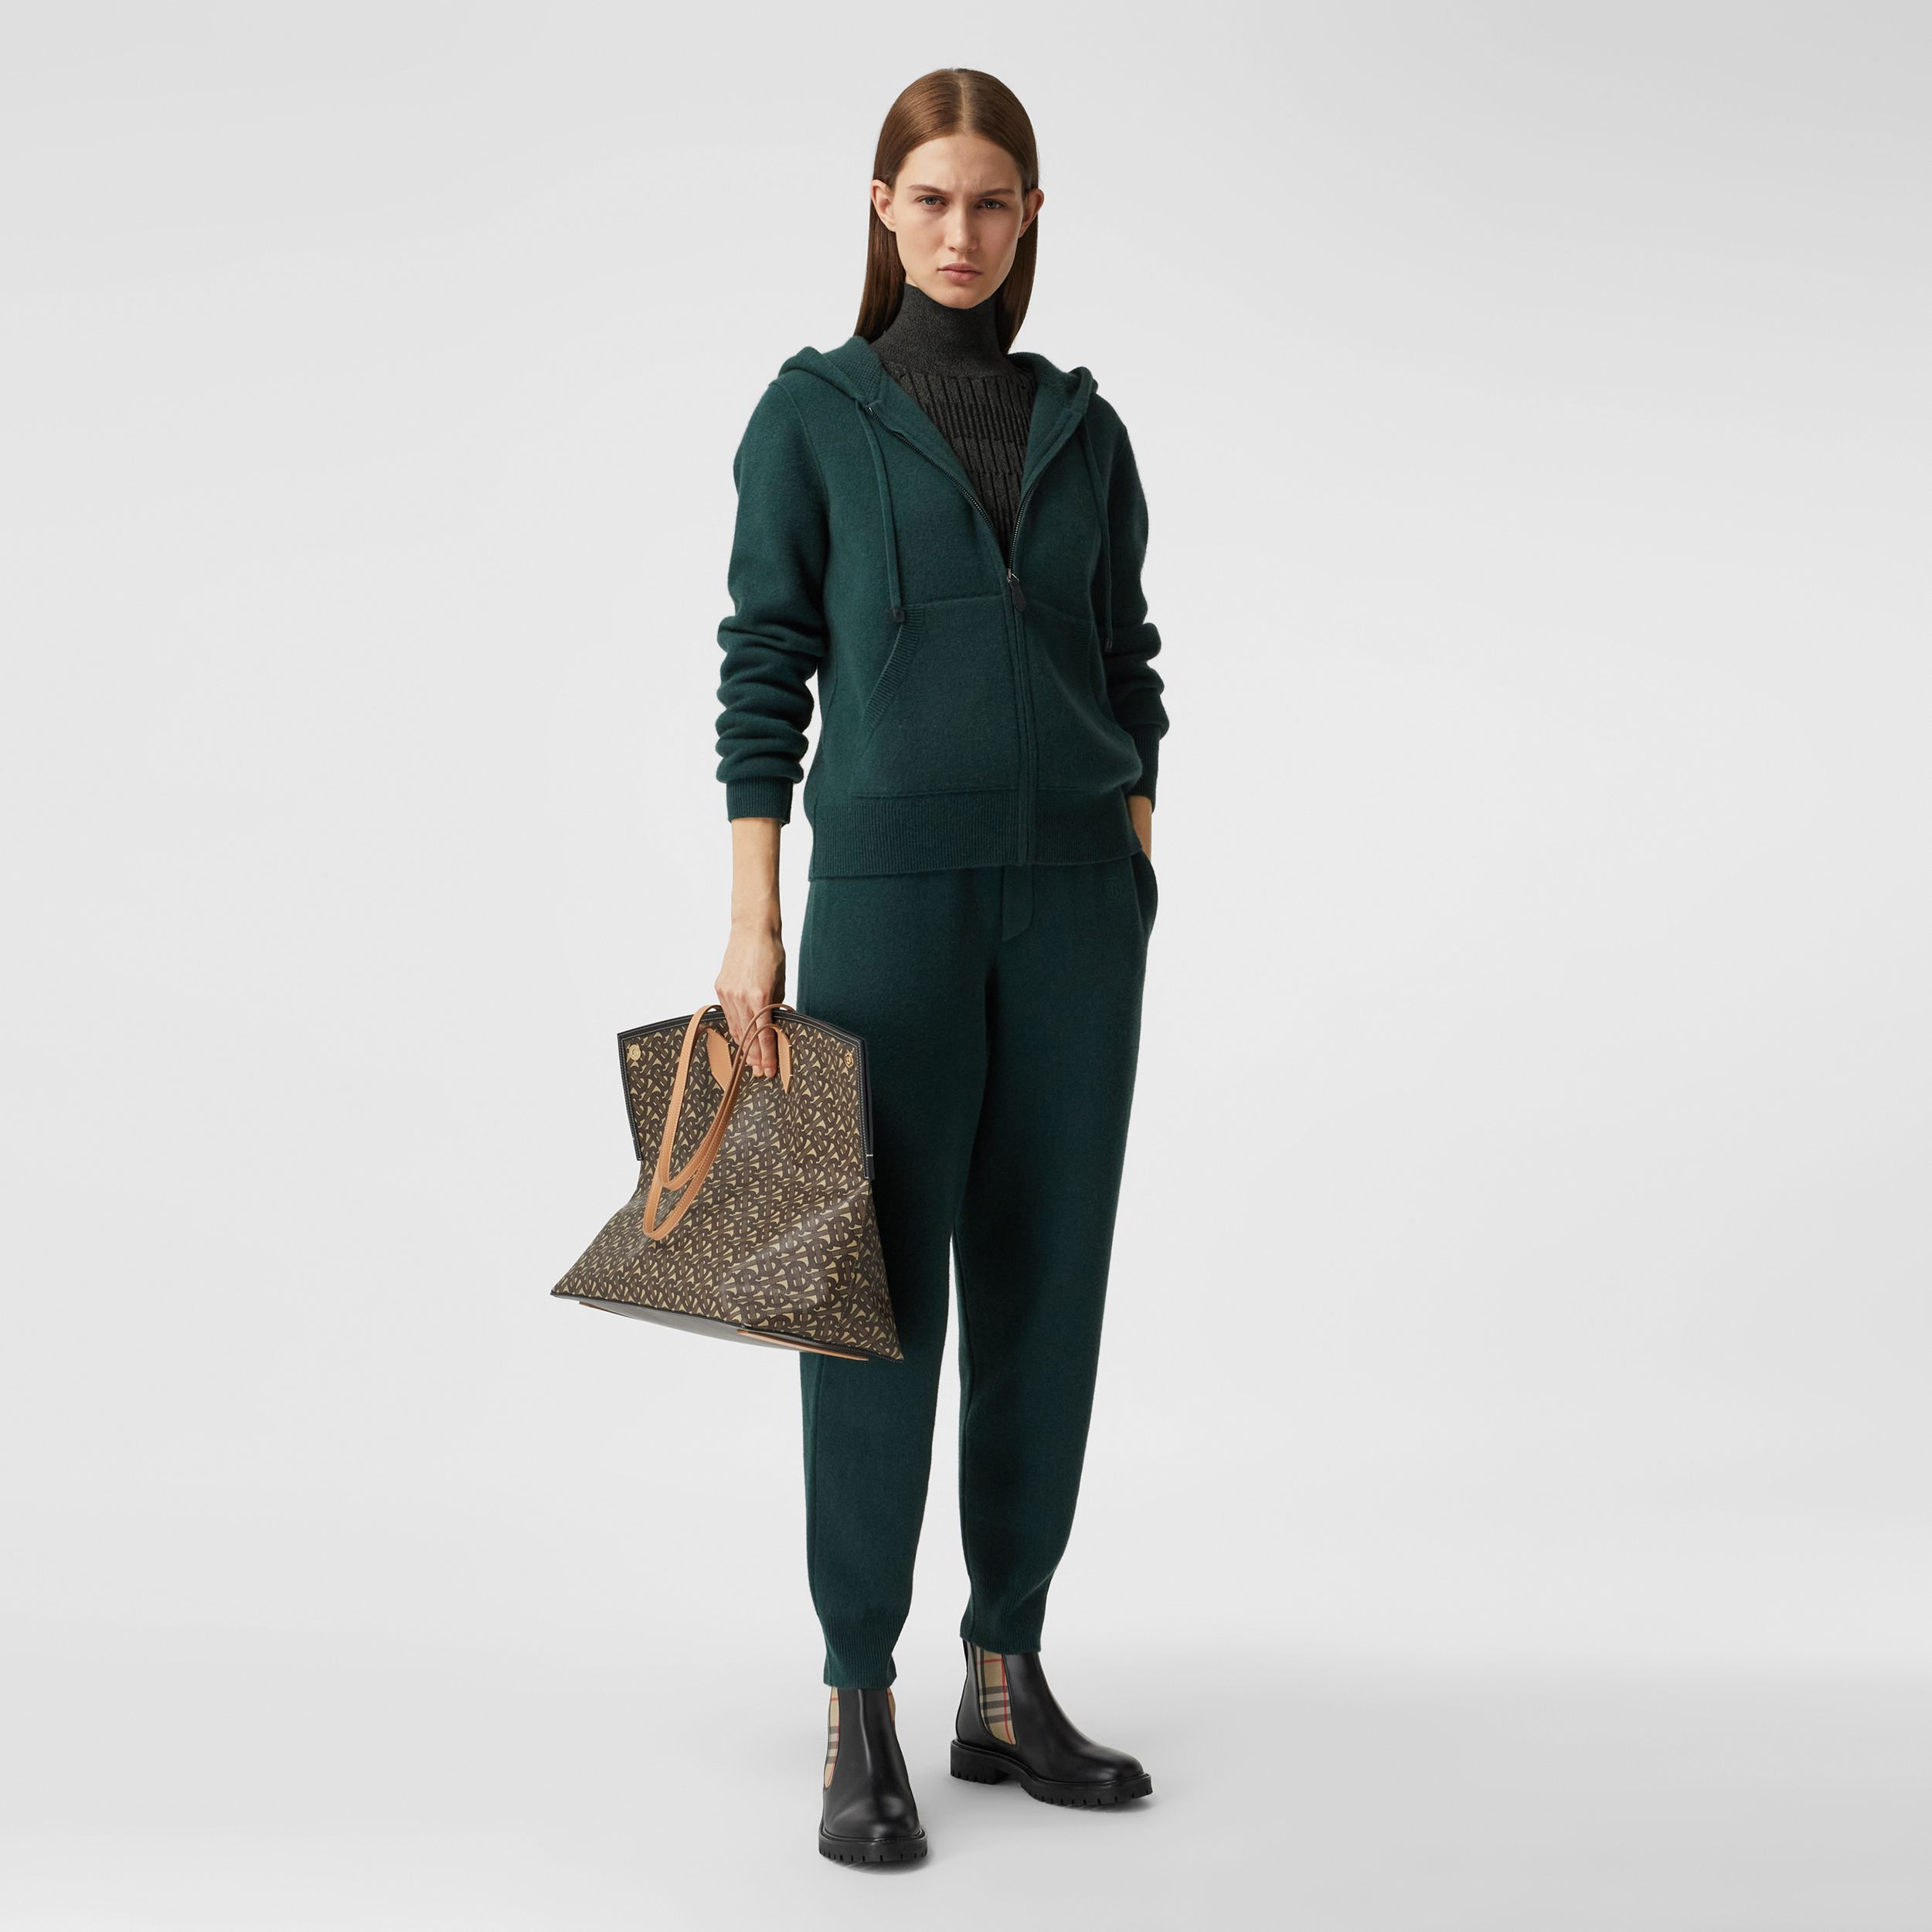 Monogram Motif Cashmere Blend Jogging Pants in Bottle Green - Women | Burberry Hong Kong S.A.R. - 1